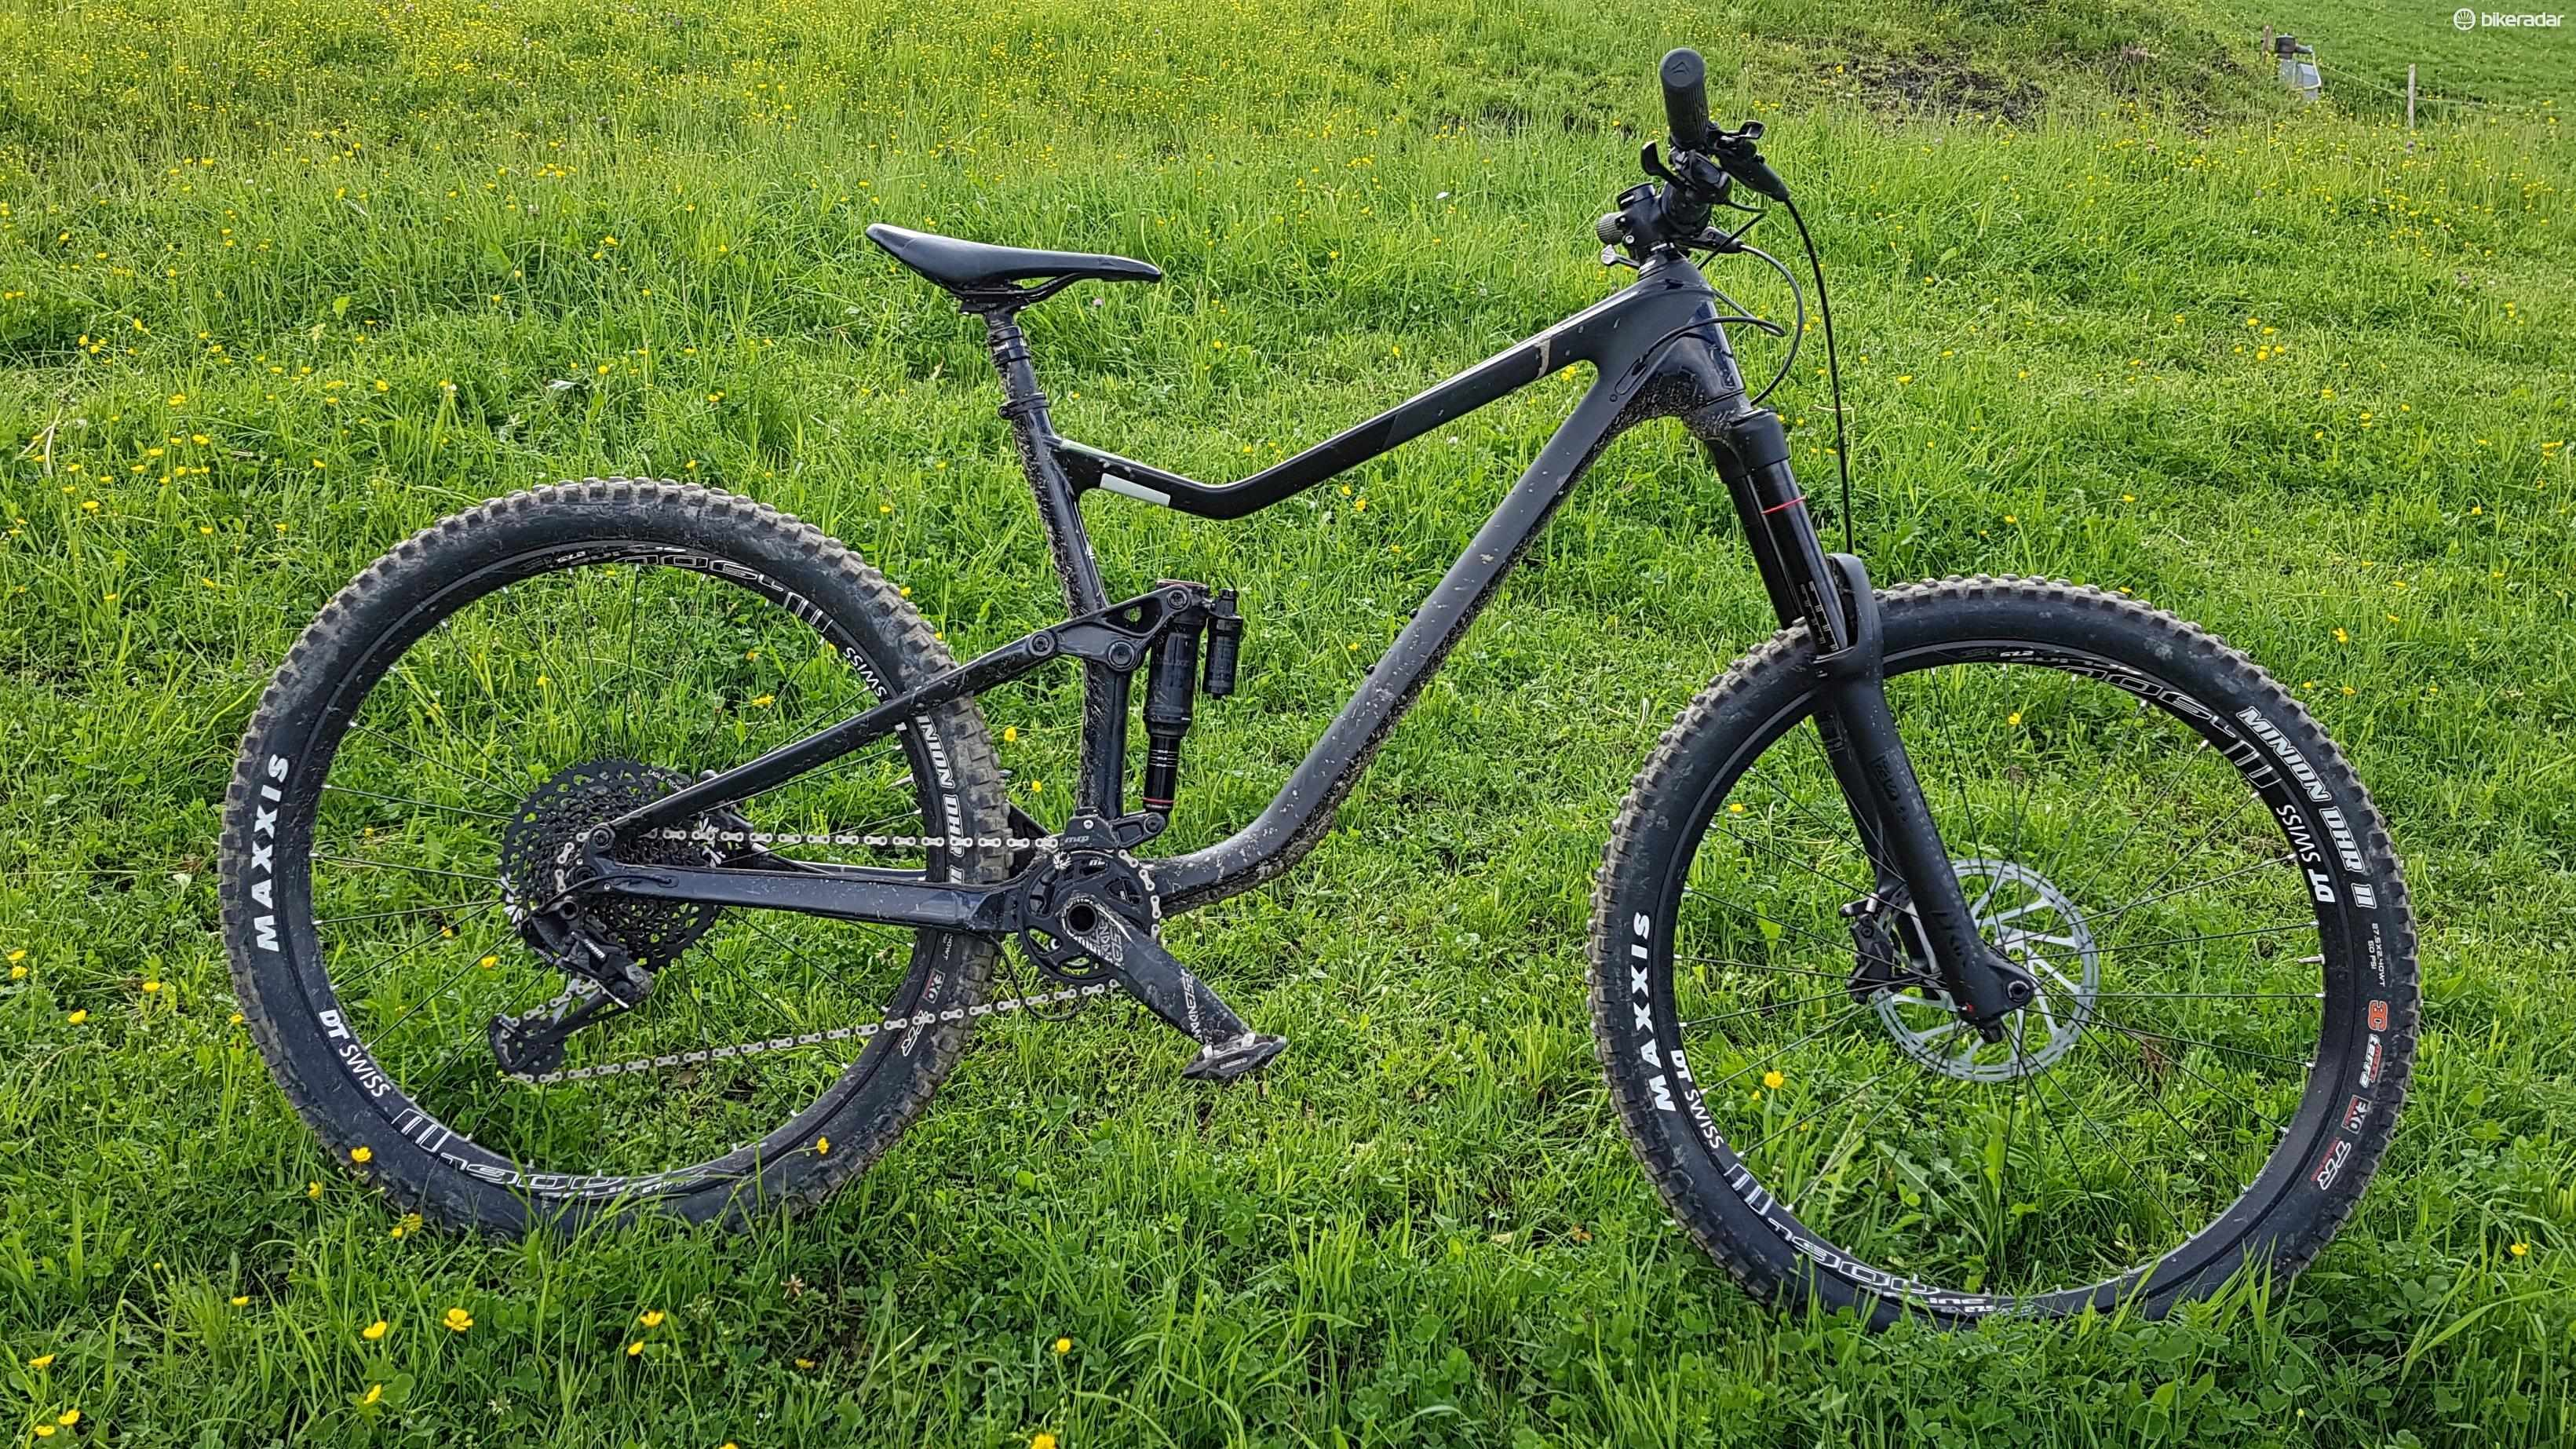 The Merida One Sixty is an intriguing enduro bike